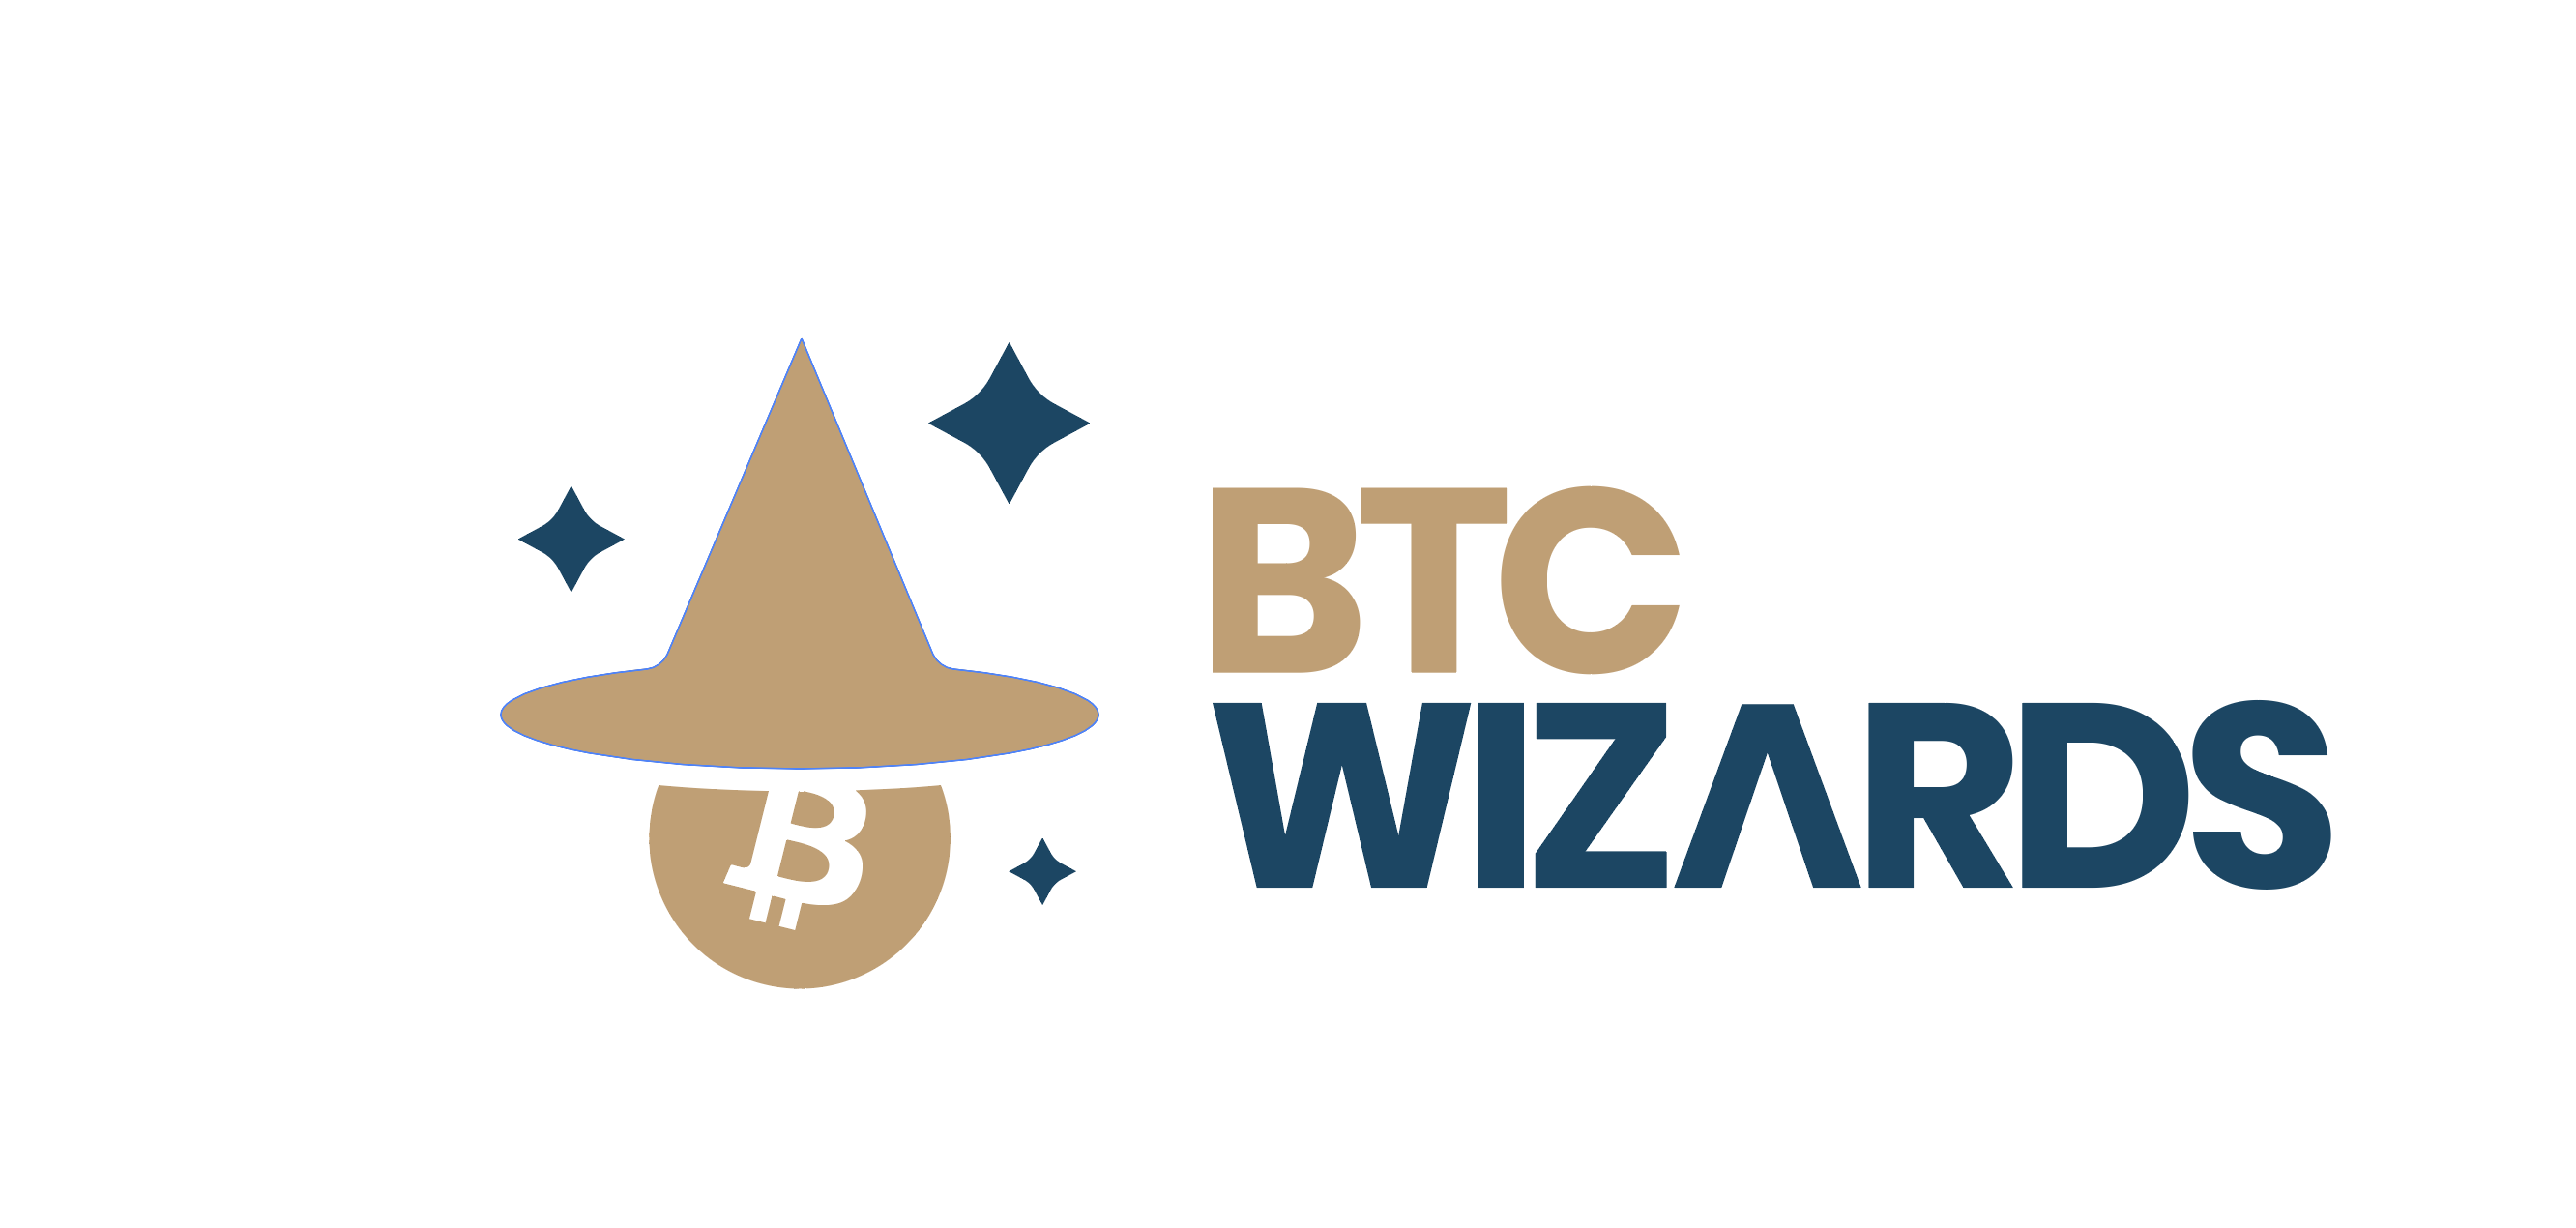 BTC Wizards LLC